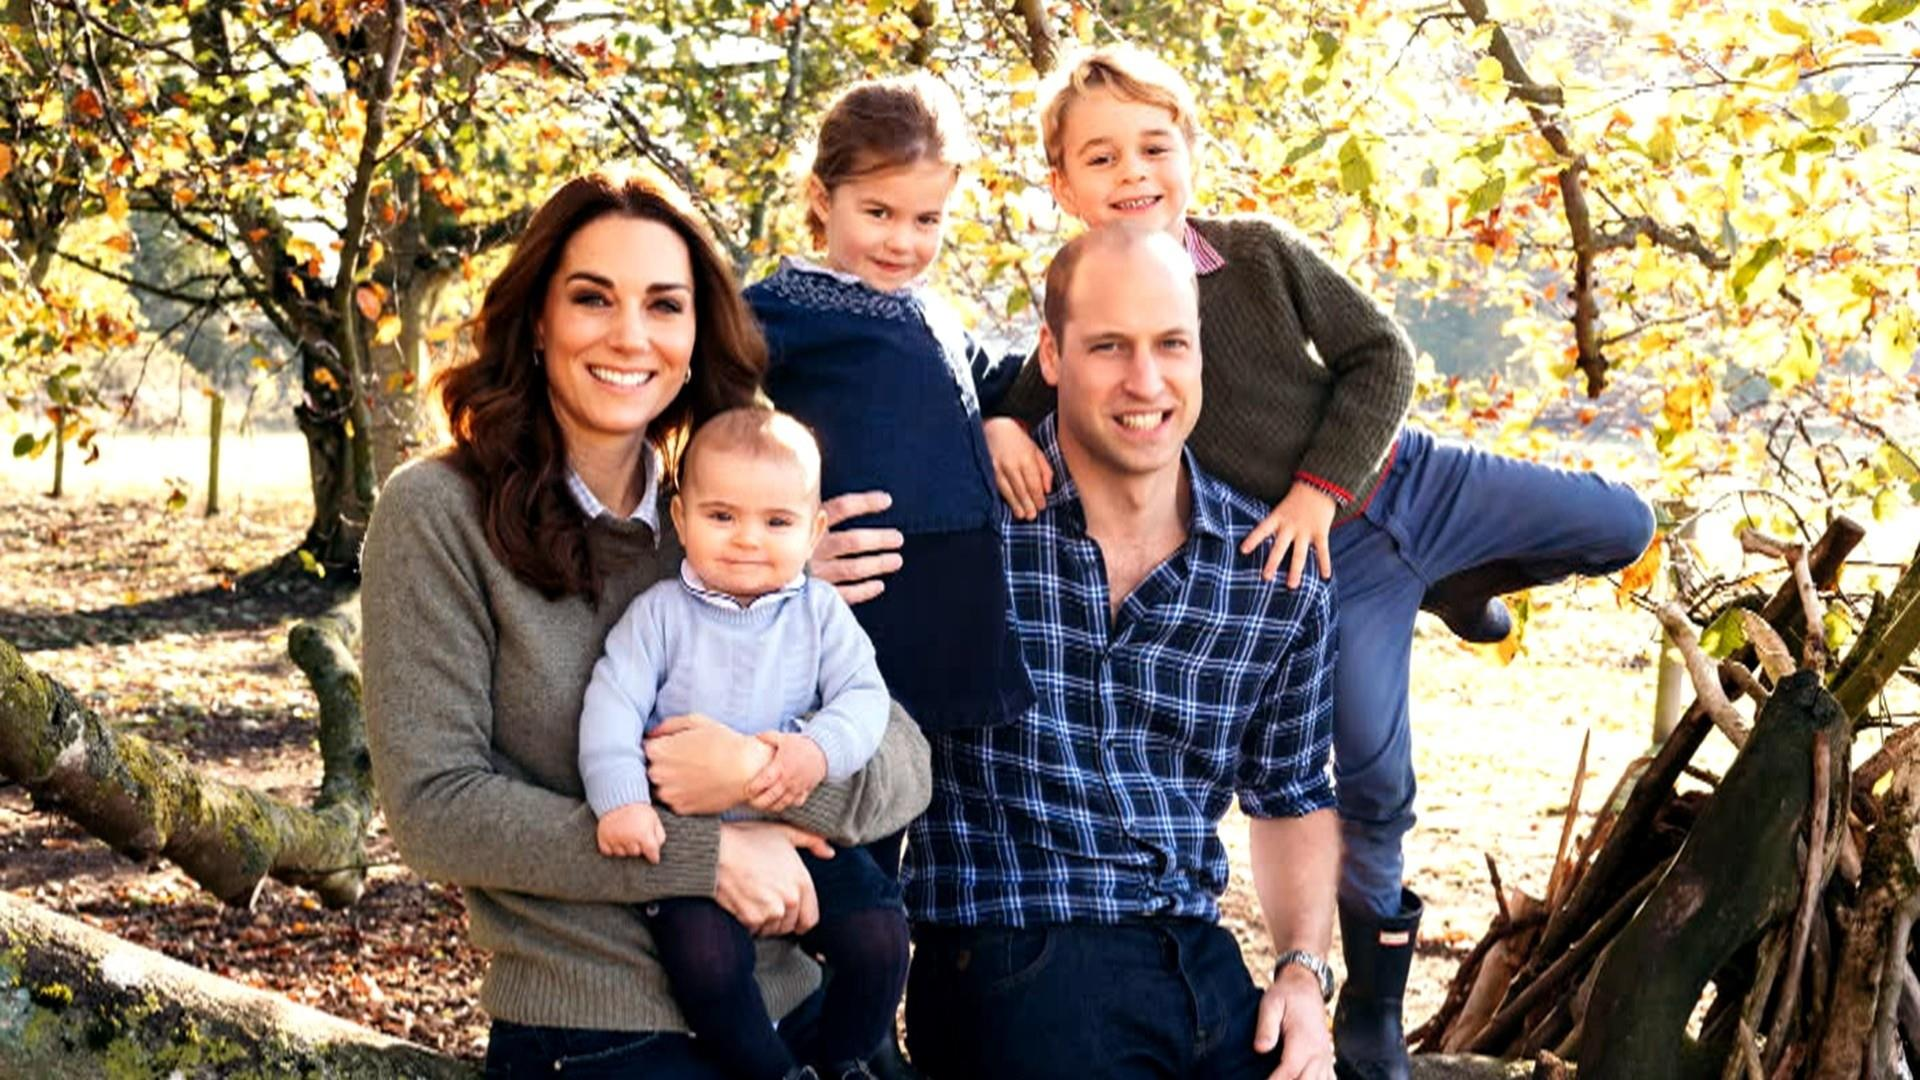 Royal Family Christmas Card 2019 Royal family releases their 2018 Christmas card photos